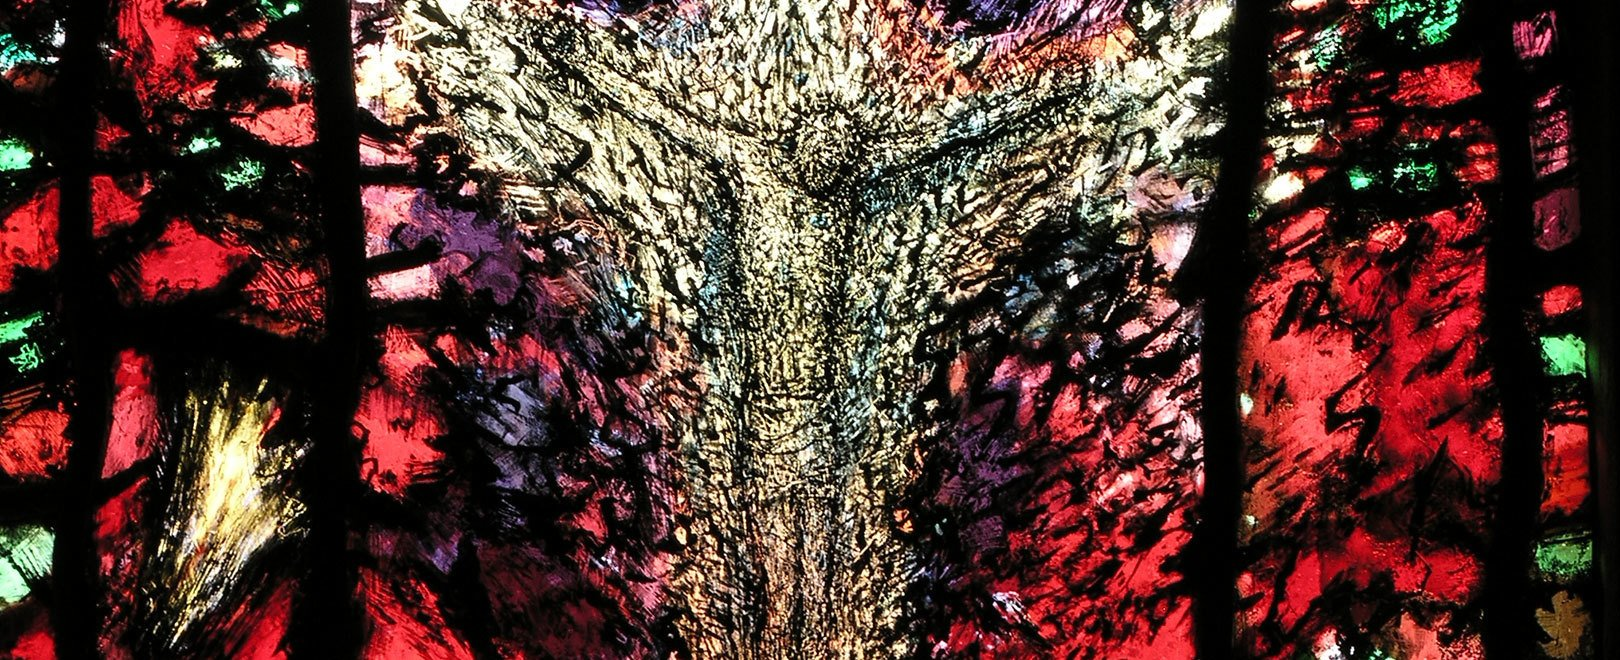 A detail from one of the windows by Tom Denny